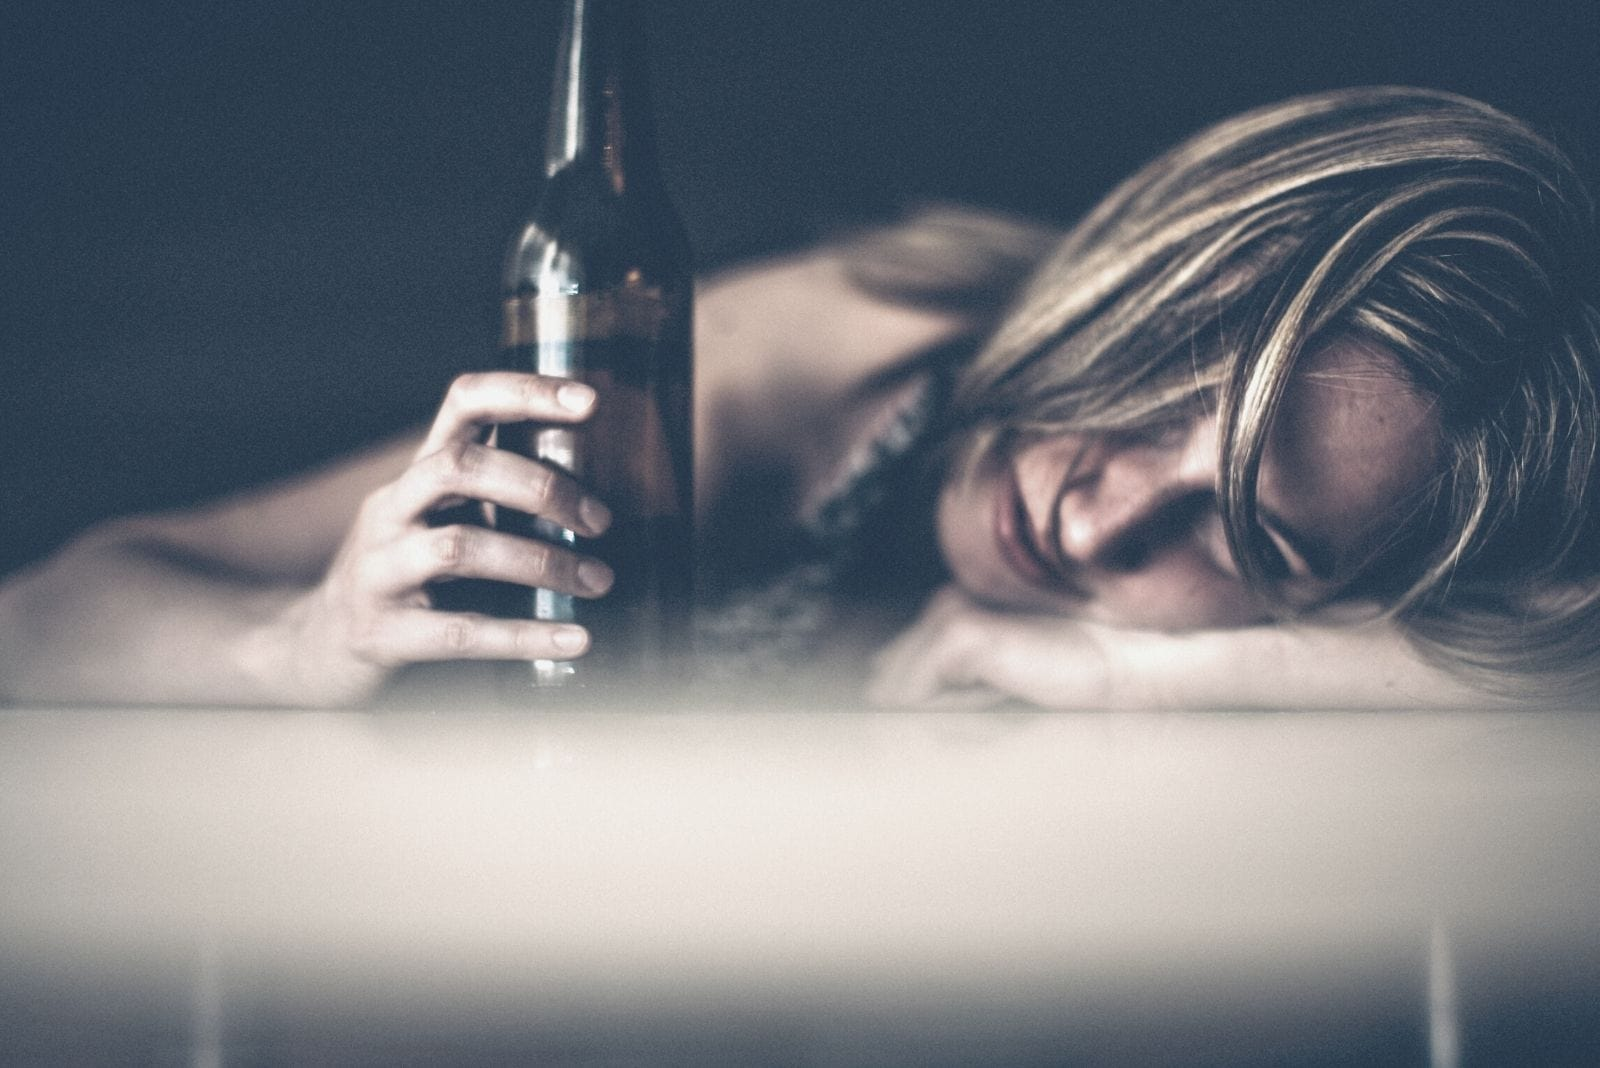 sad woman drinking and holding beer while crying and leaning her head on the table